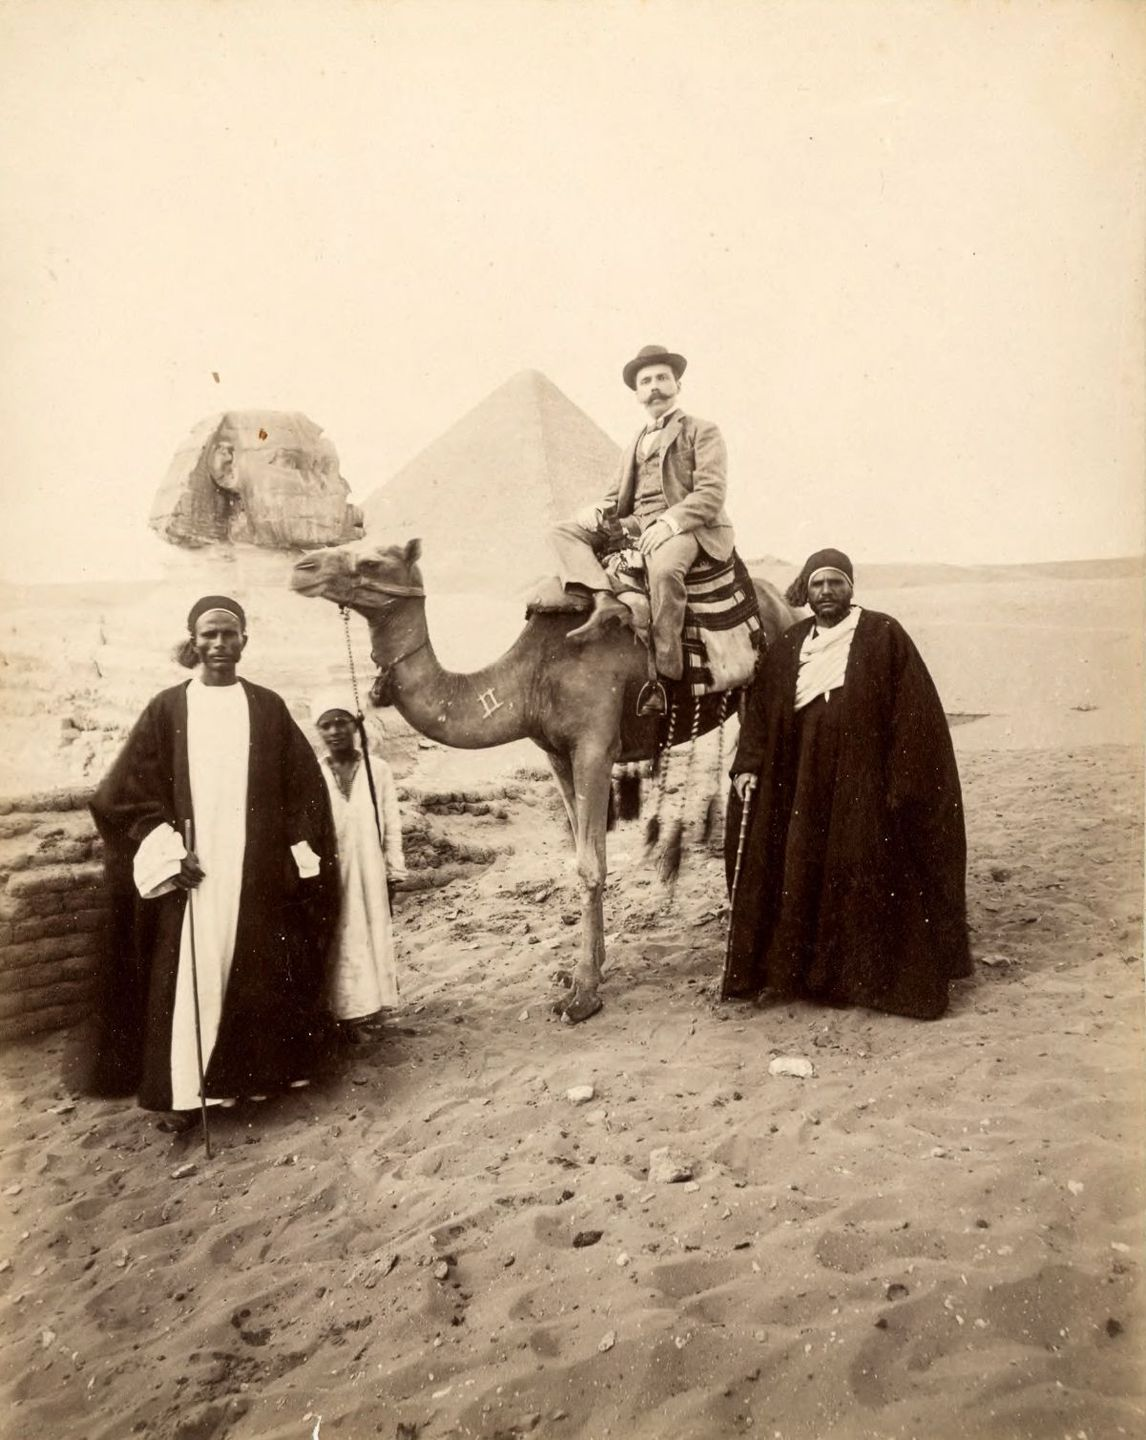 Tourist and guides with camel.